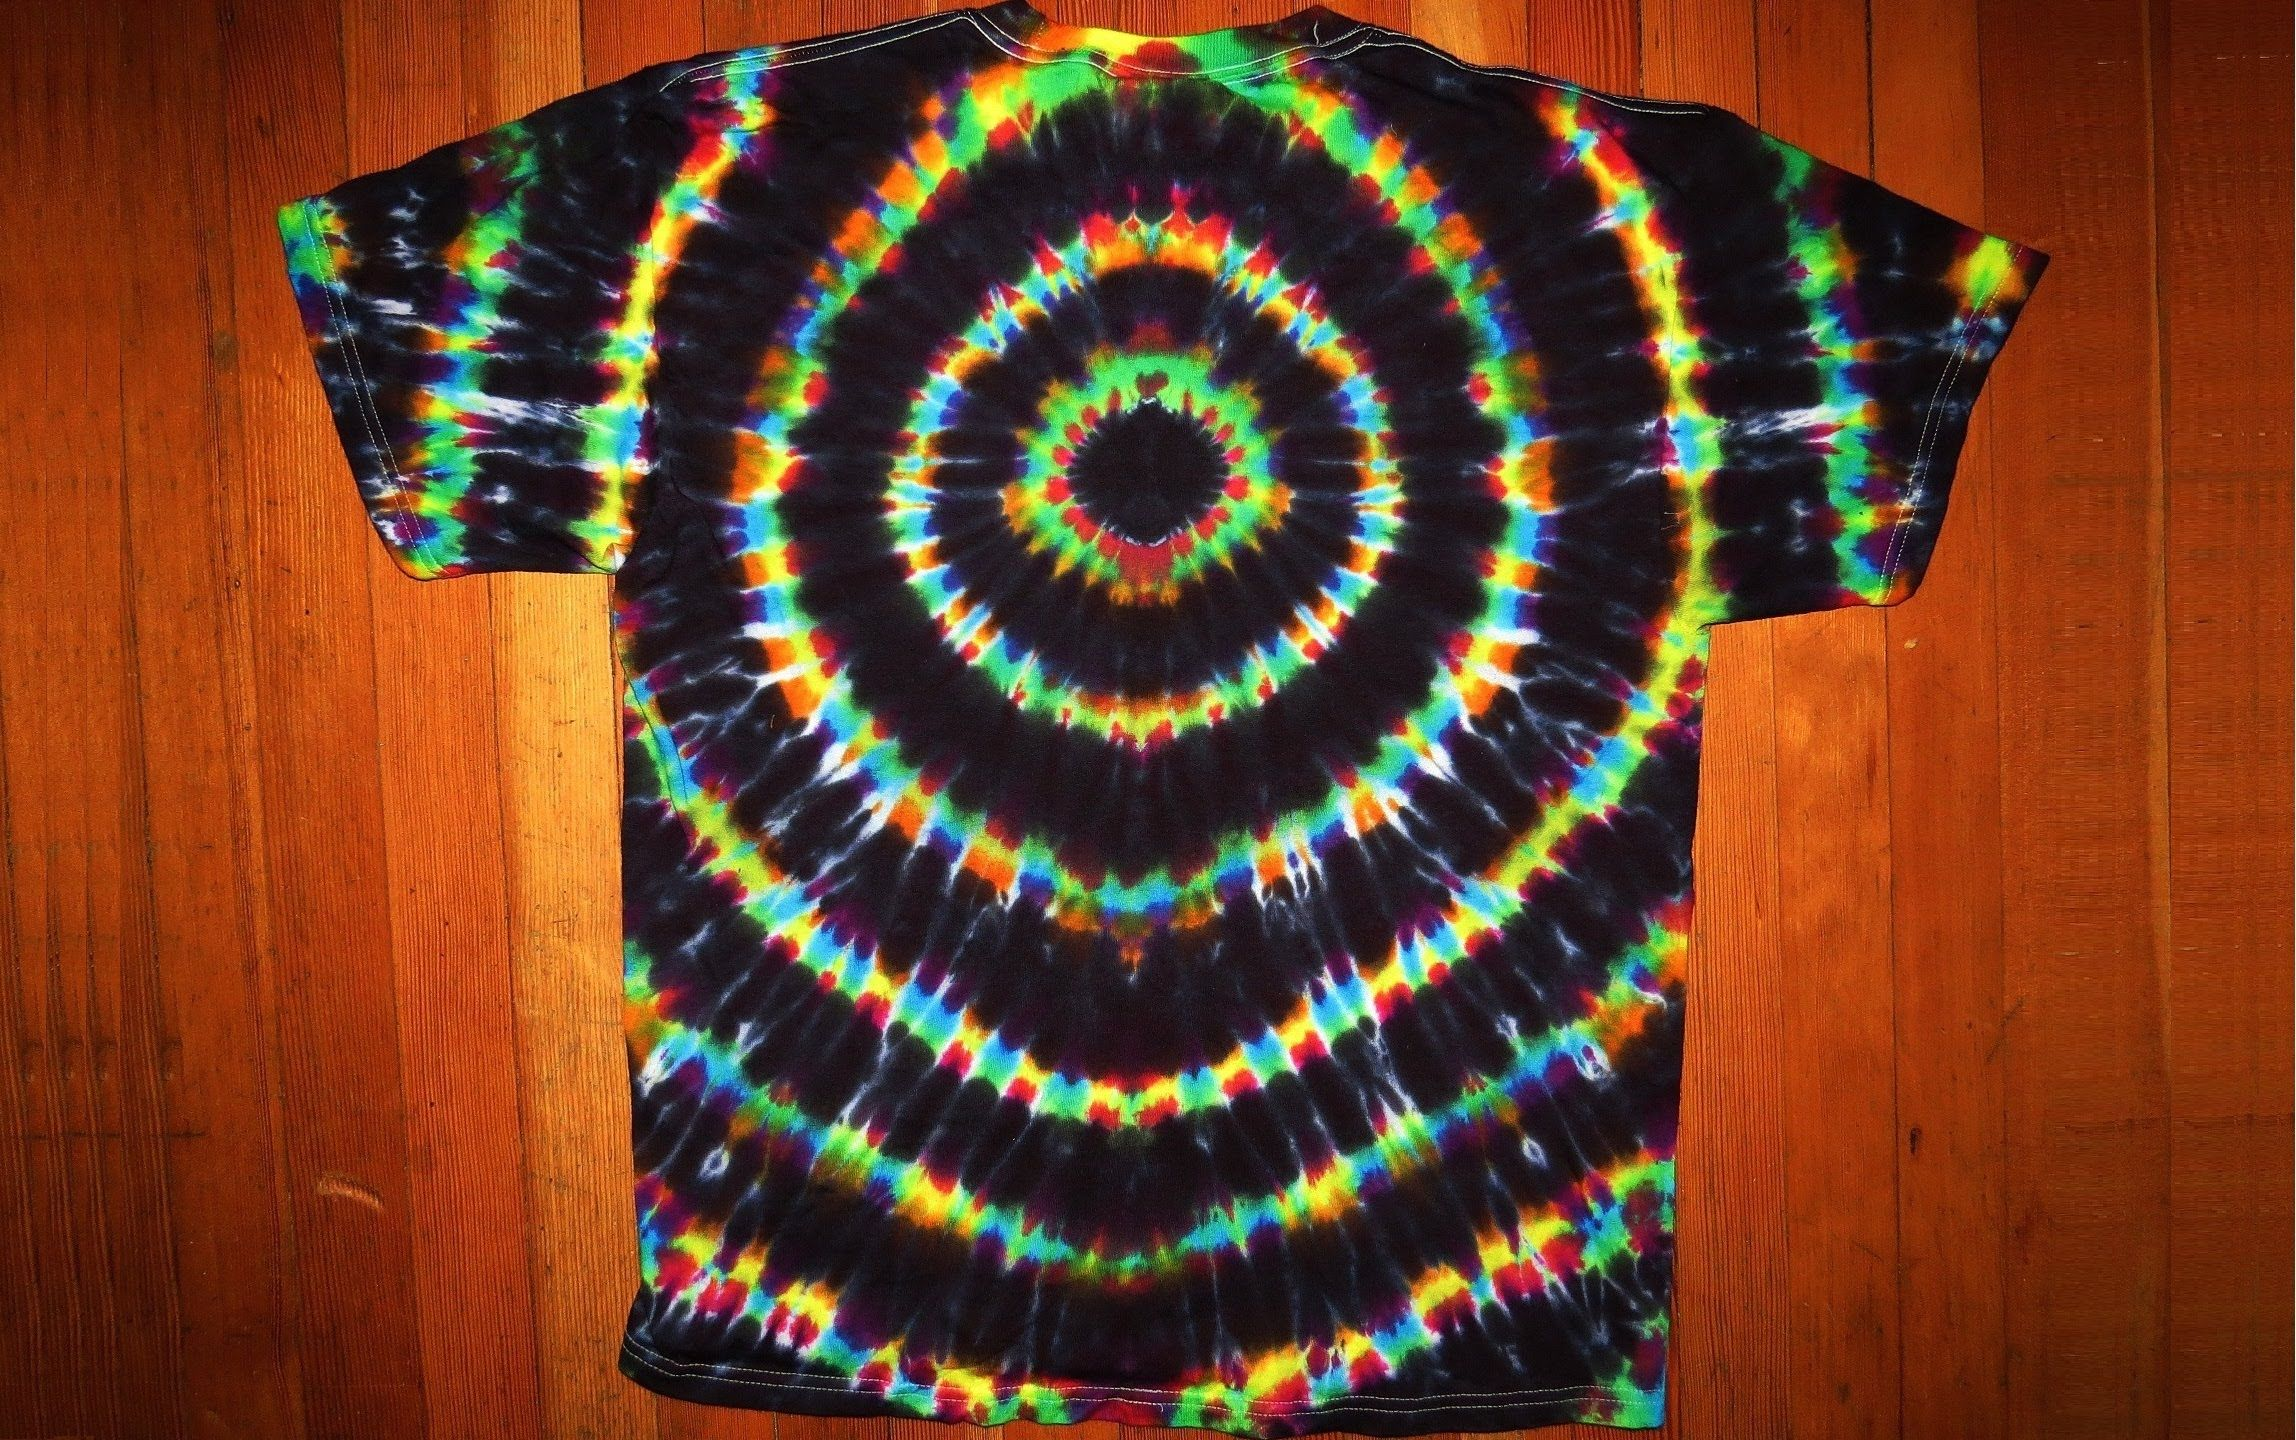 676ca1584b60d9 Secrets of Tie Dye  The Black Hole (Part I) - YouTube